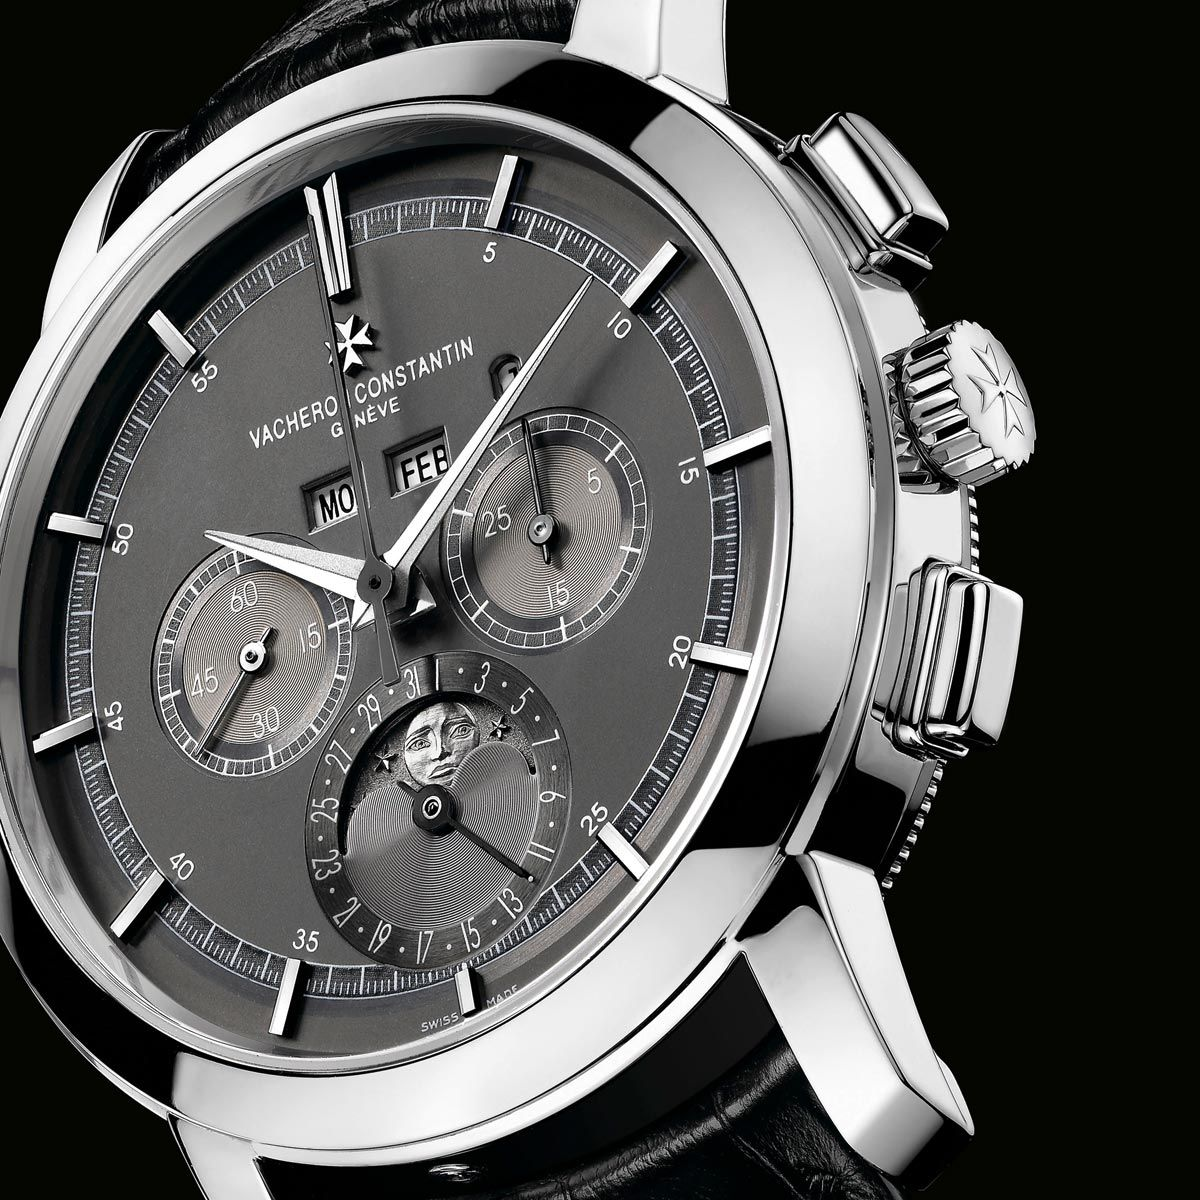 Best 25 vacheron constantin ideas on pinterest mens watches leather vintage watches and for Vacheron constantin